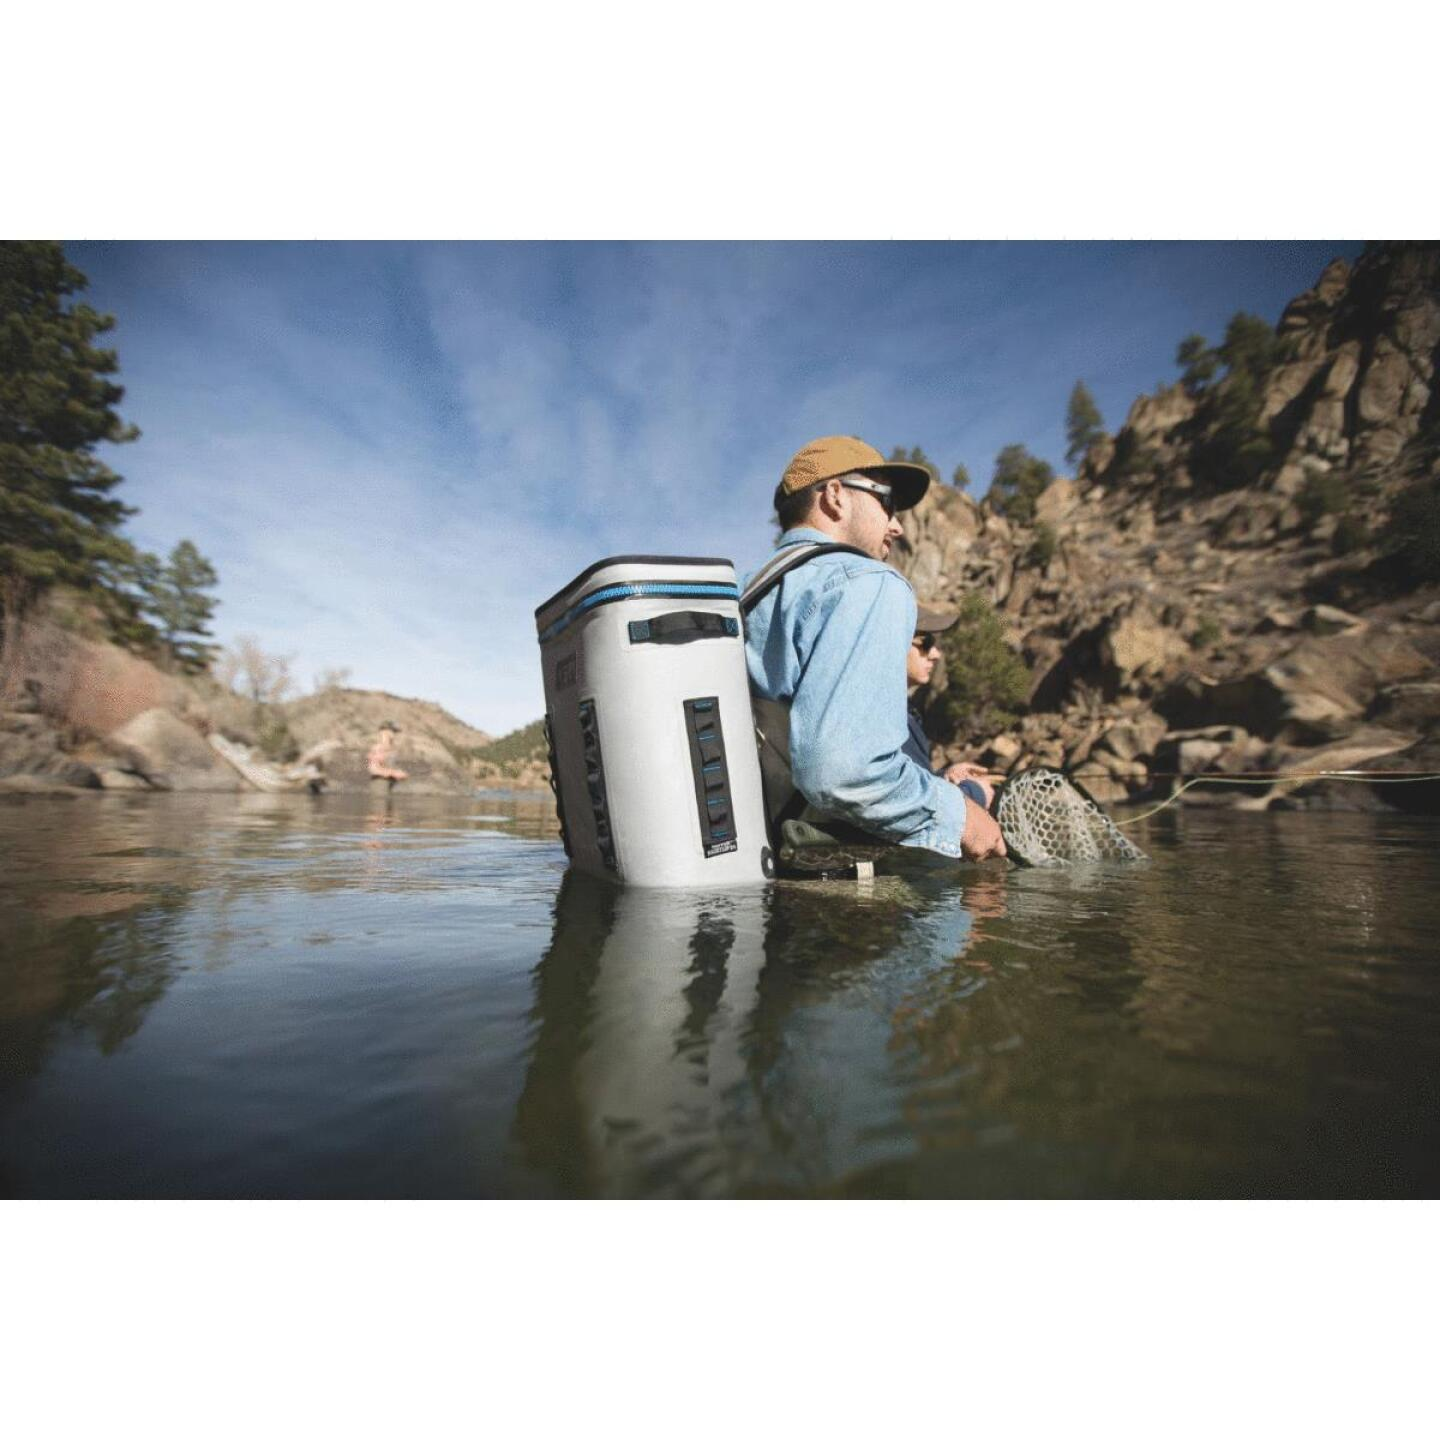 Yeti Hopper BackFlip 24 20-Can Soft-Side Cooler, Gray Image 5